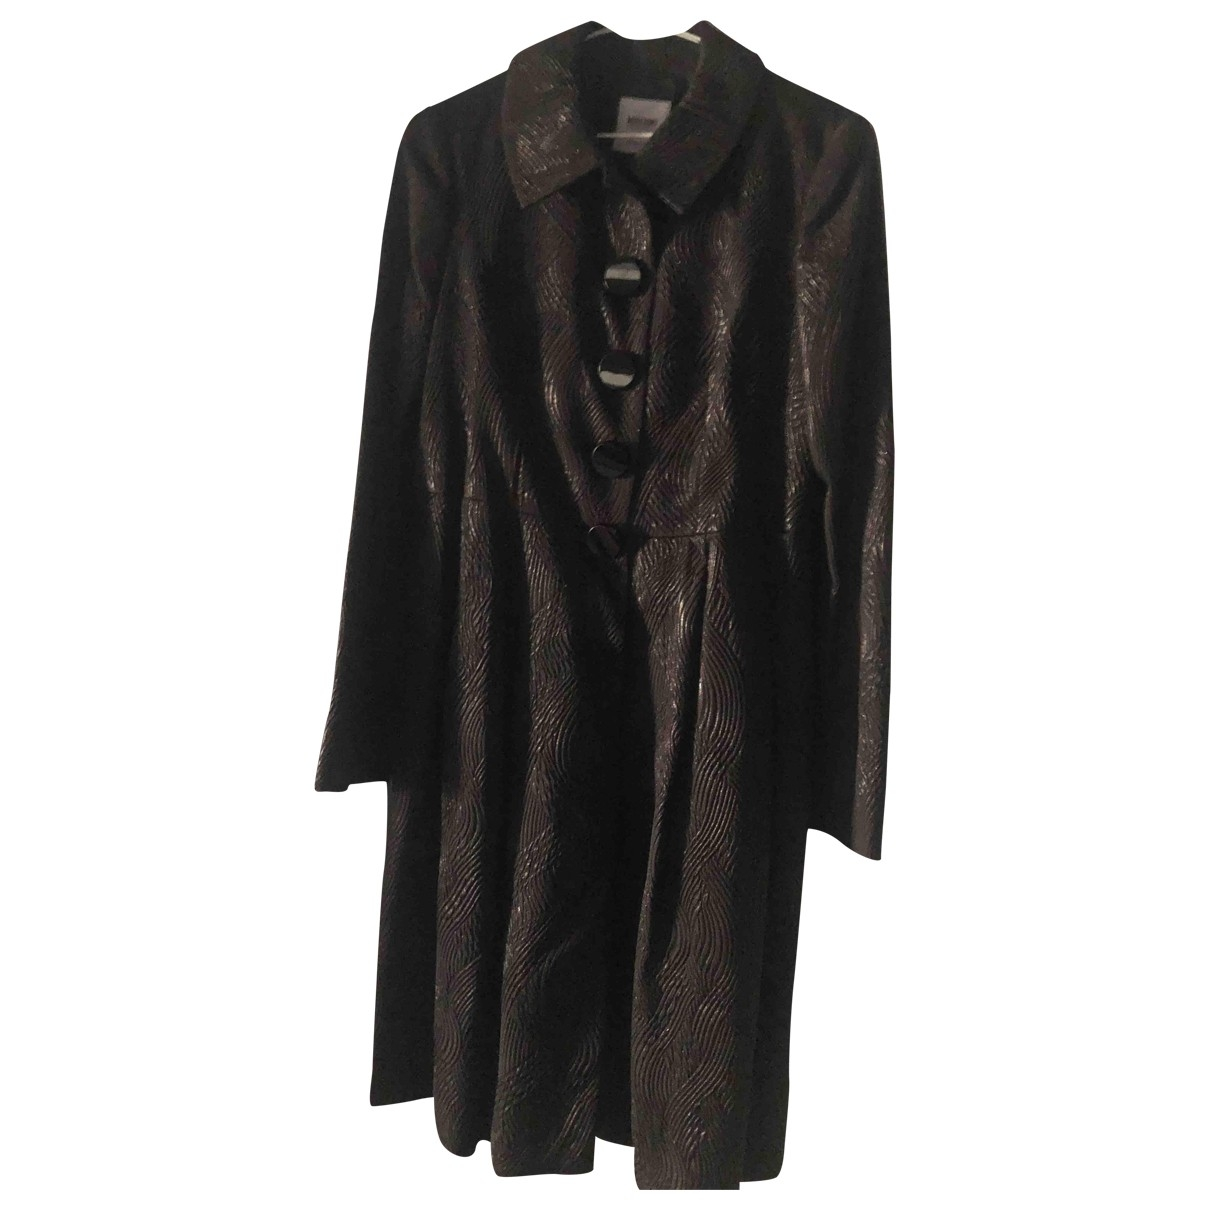 Moschino Cheap And Chic \N Black Silk coat for Women 38 FR